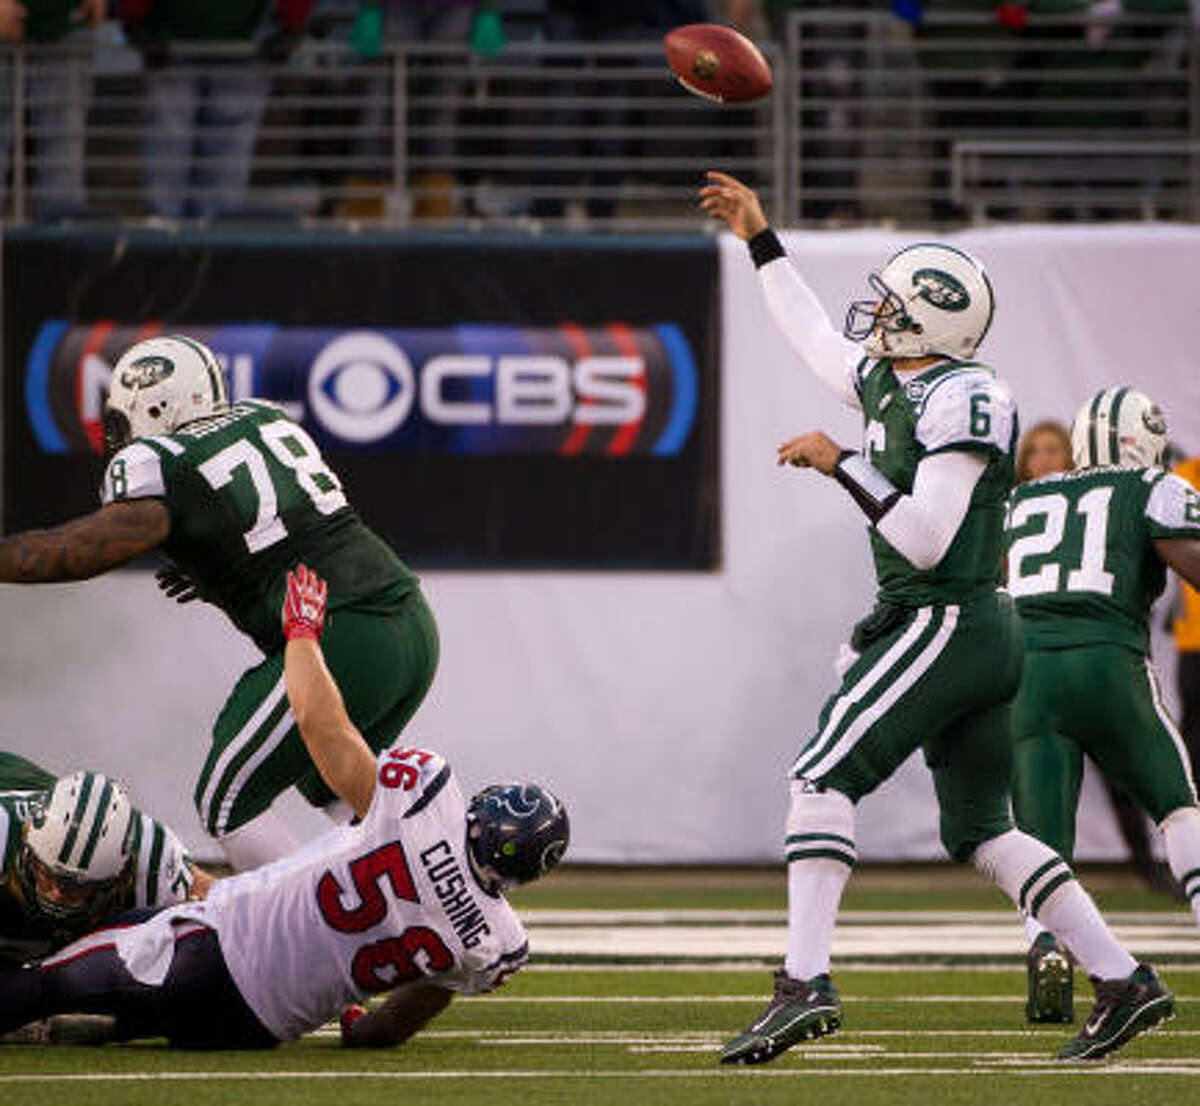 Jets quarterback Mark Sanchez lofts a 6-yard touchdown pass to receiver Santonio Holmes with 10 seconds left in Sunday's game. That touchdown put the Jets ahead 30-27, and they held on for the win.